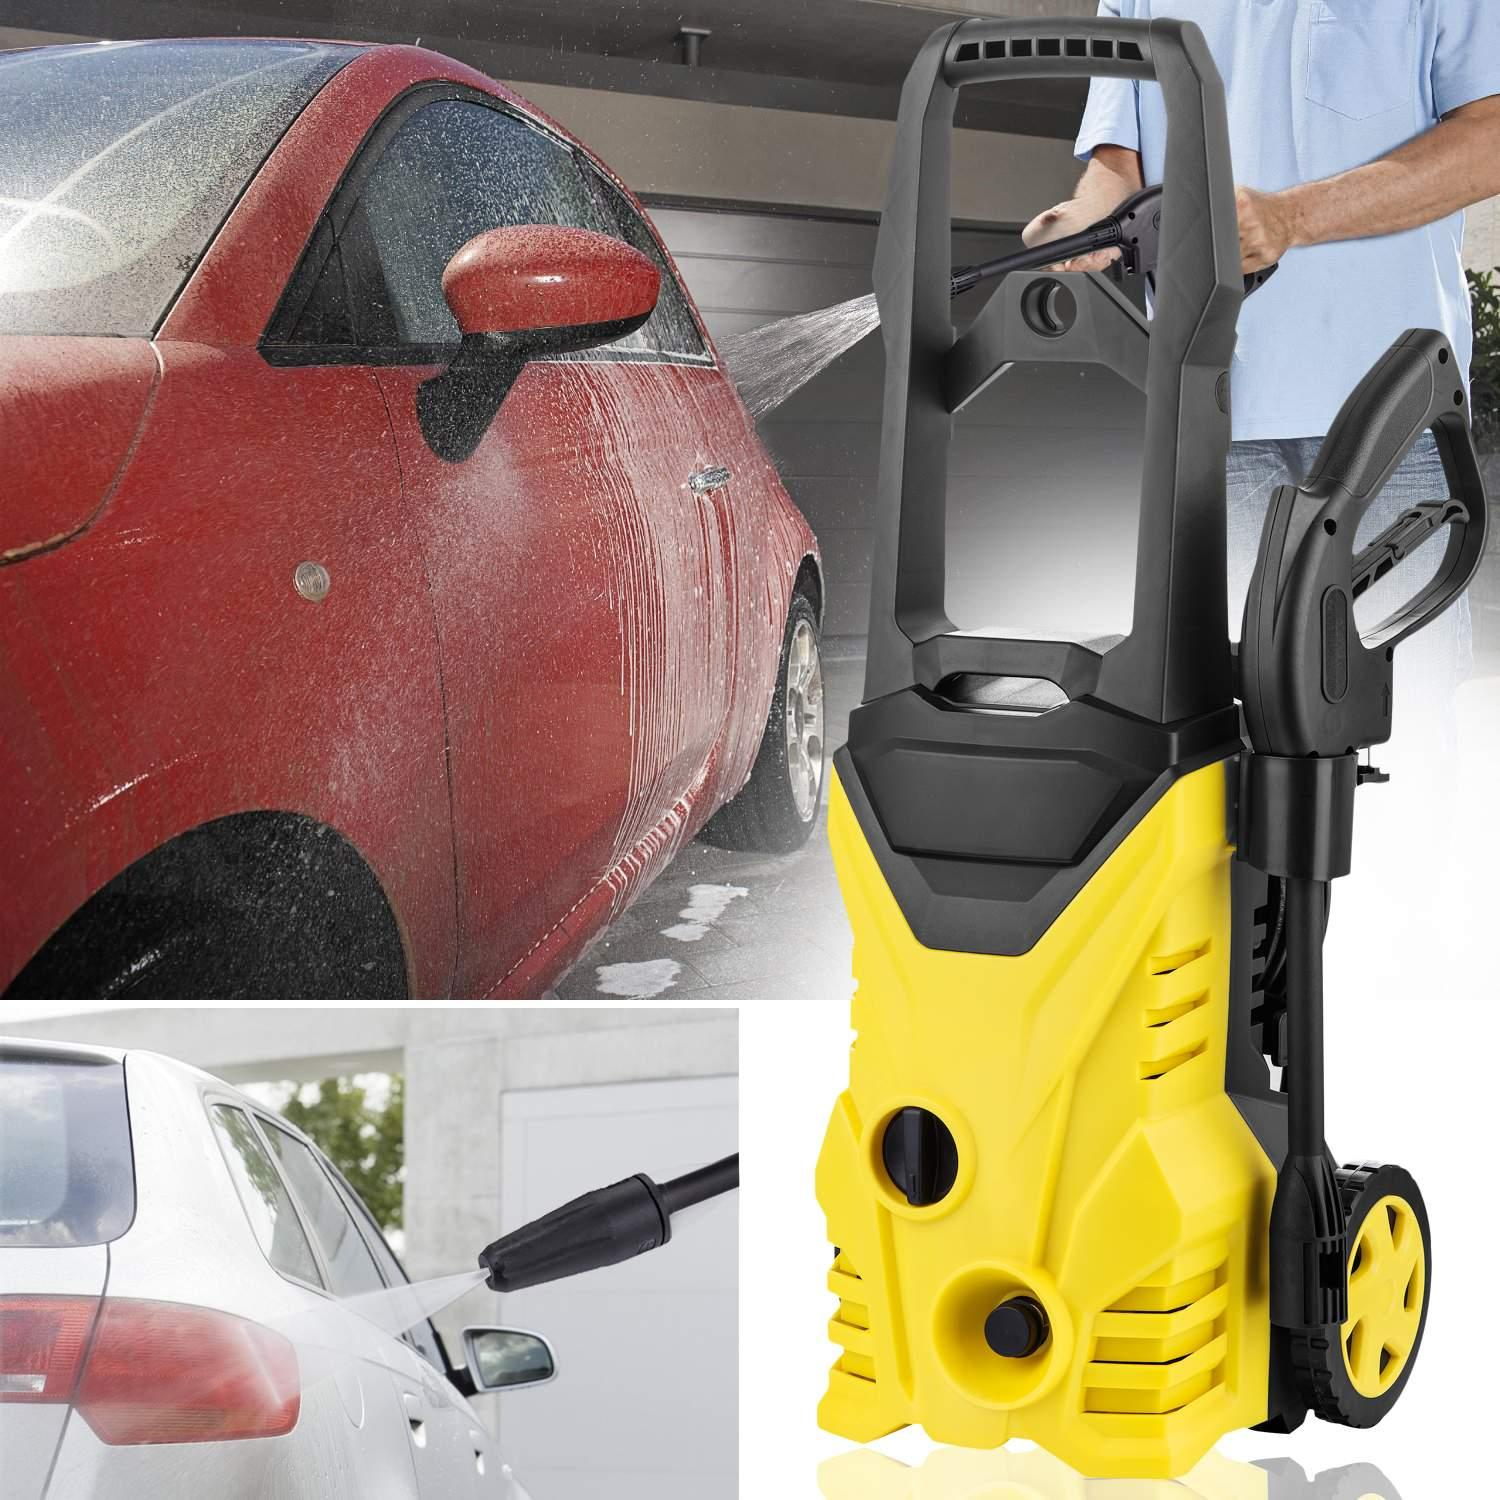 Big Clearance! 2000 PSI 1.4 GPM Electric Pressure Washer with Power Garden Home WSY